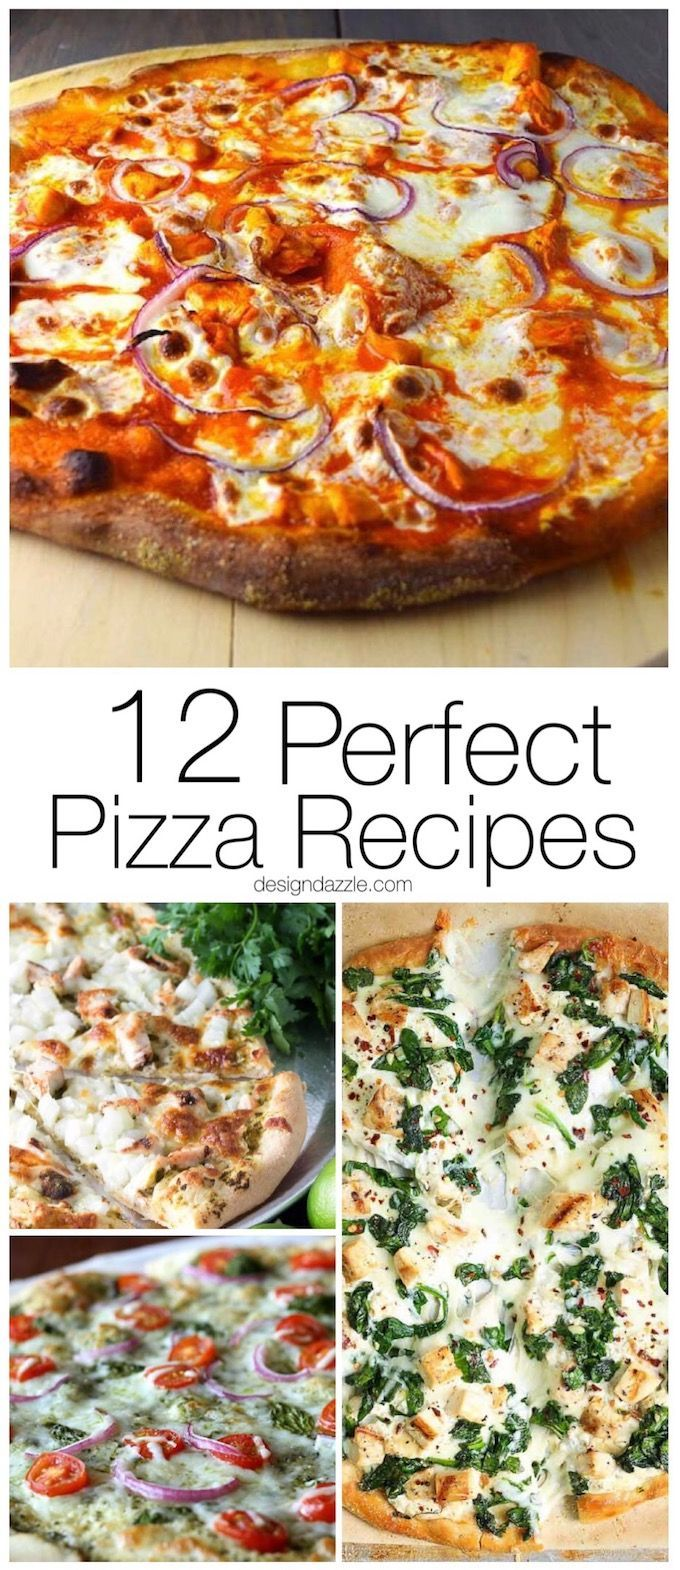 I found 12 of the most perfect, mouth watering, pizza recipes out there that will have you drooling just thinking about them!   homemade pizza recipes   easy pizza recipes   pizza recipe ideas    Design Dazzle #pizzarecipes #homemadepizza #pizza